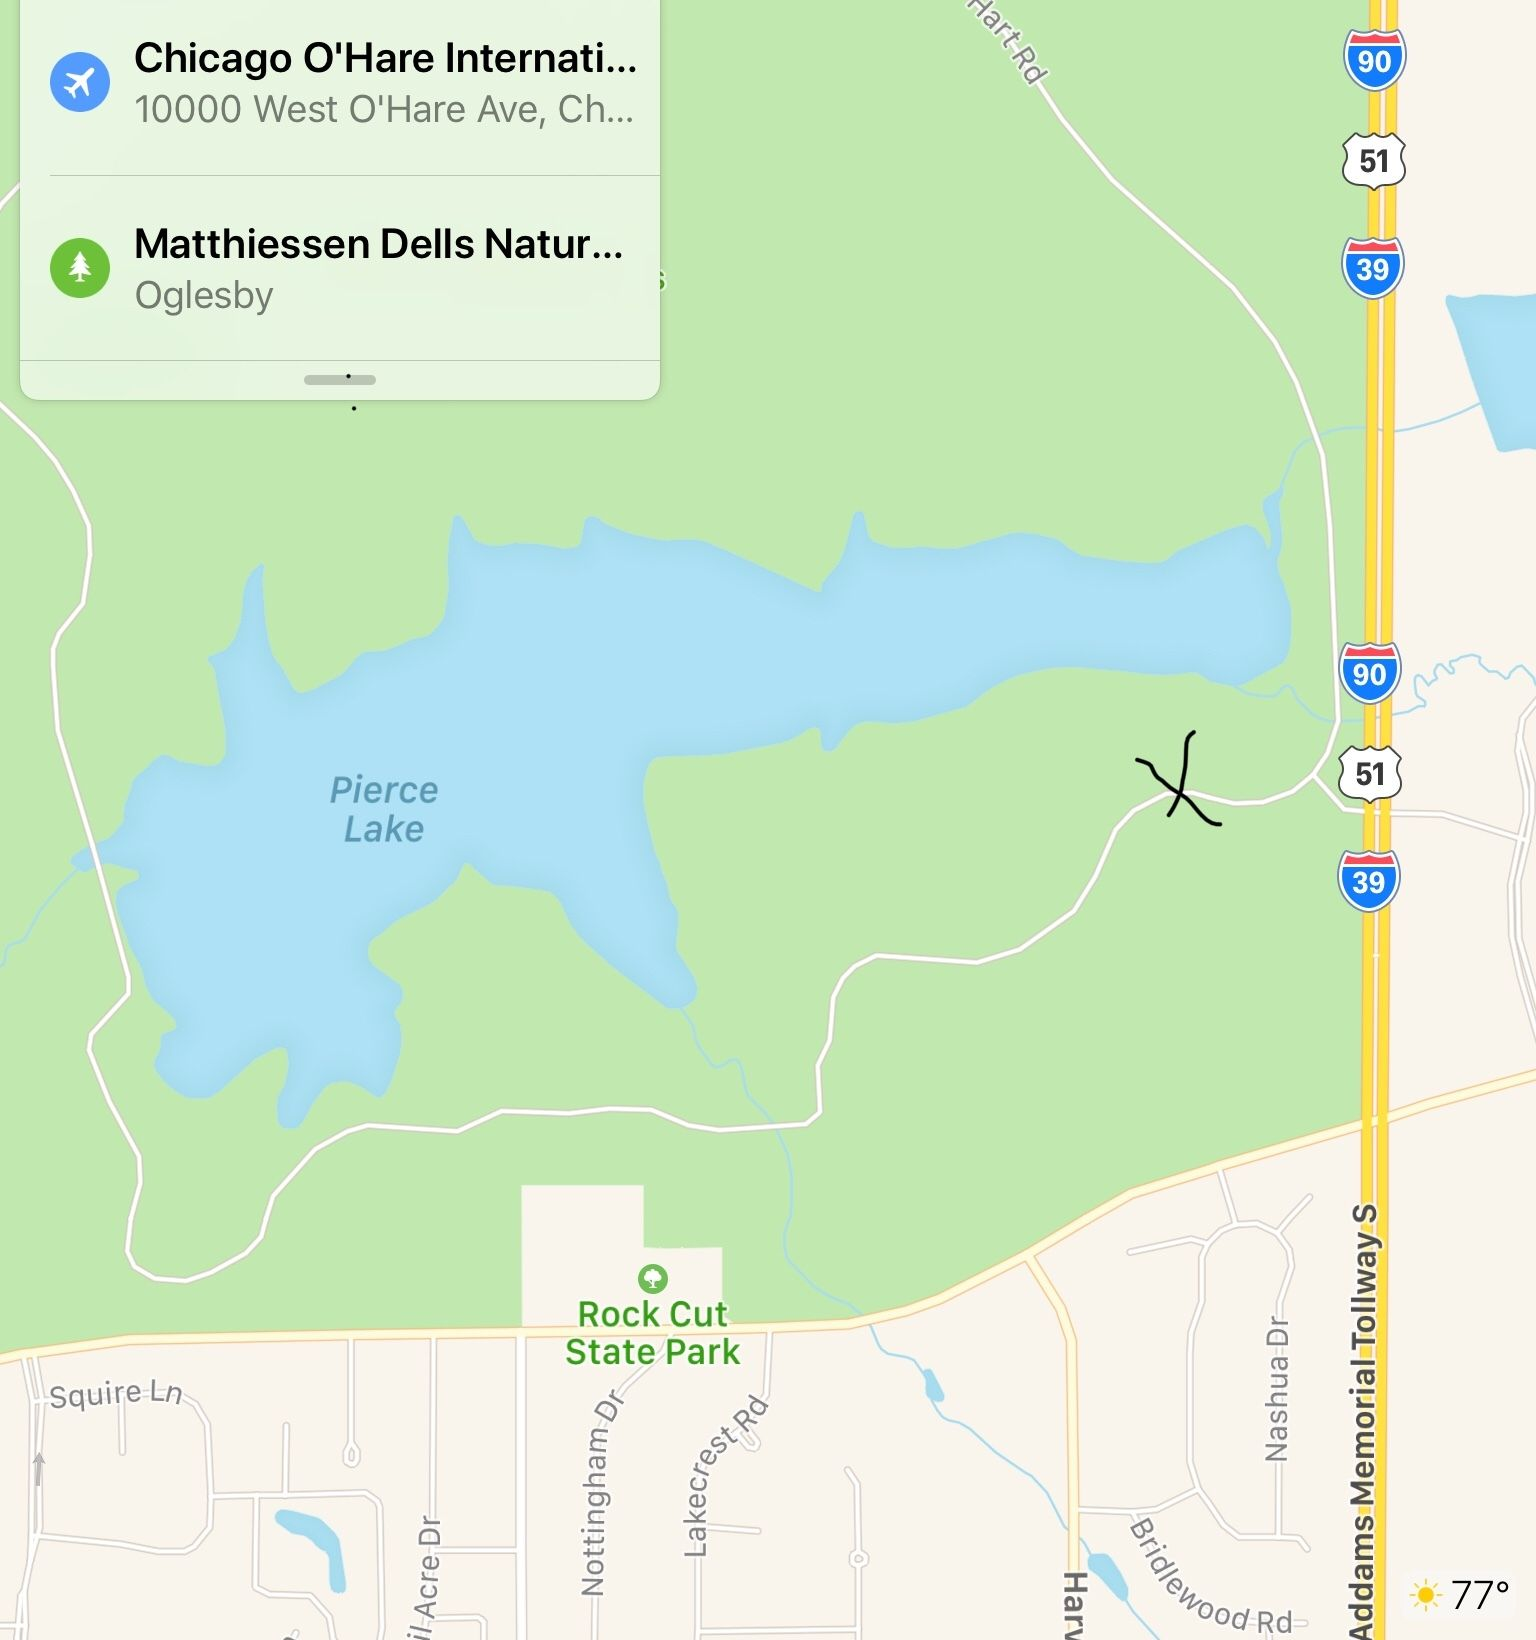 Thursday hike at Rock Cut State Park - 30 AUG 2018